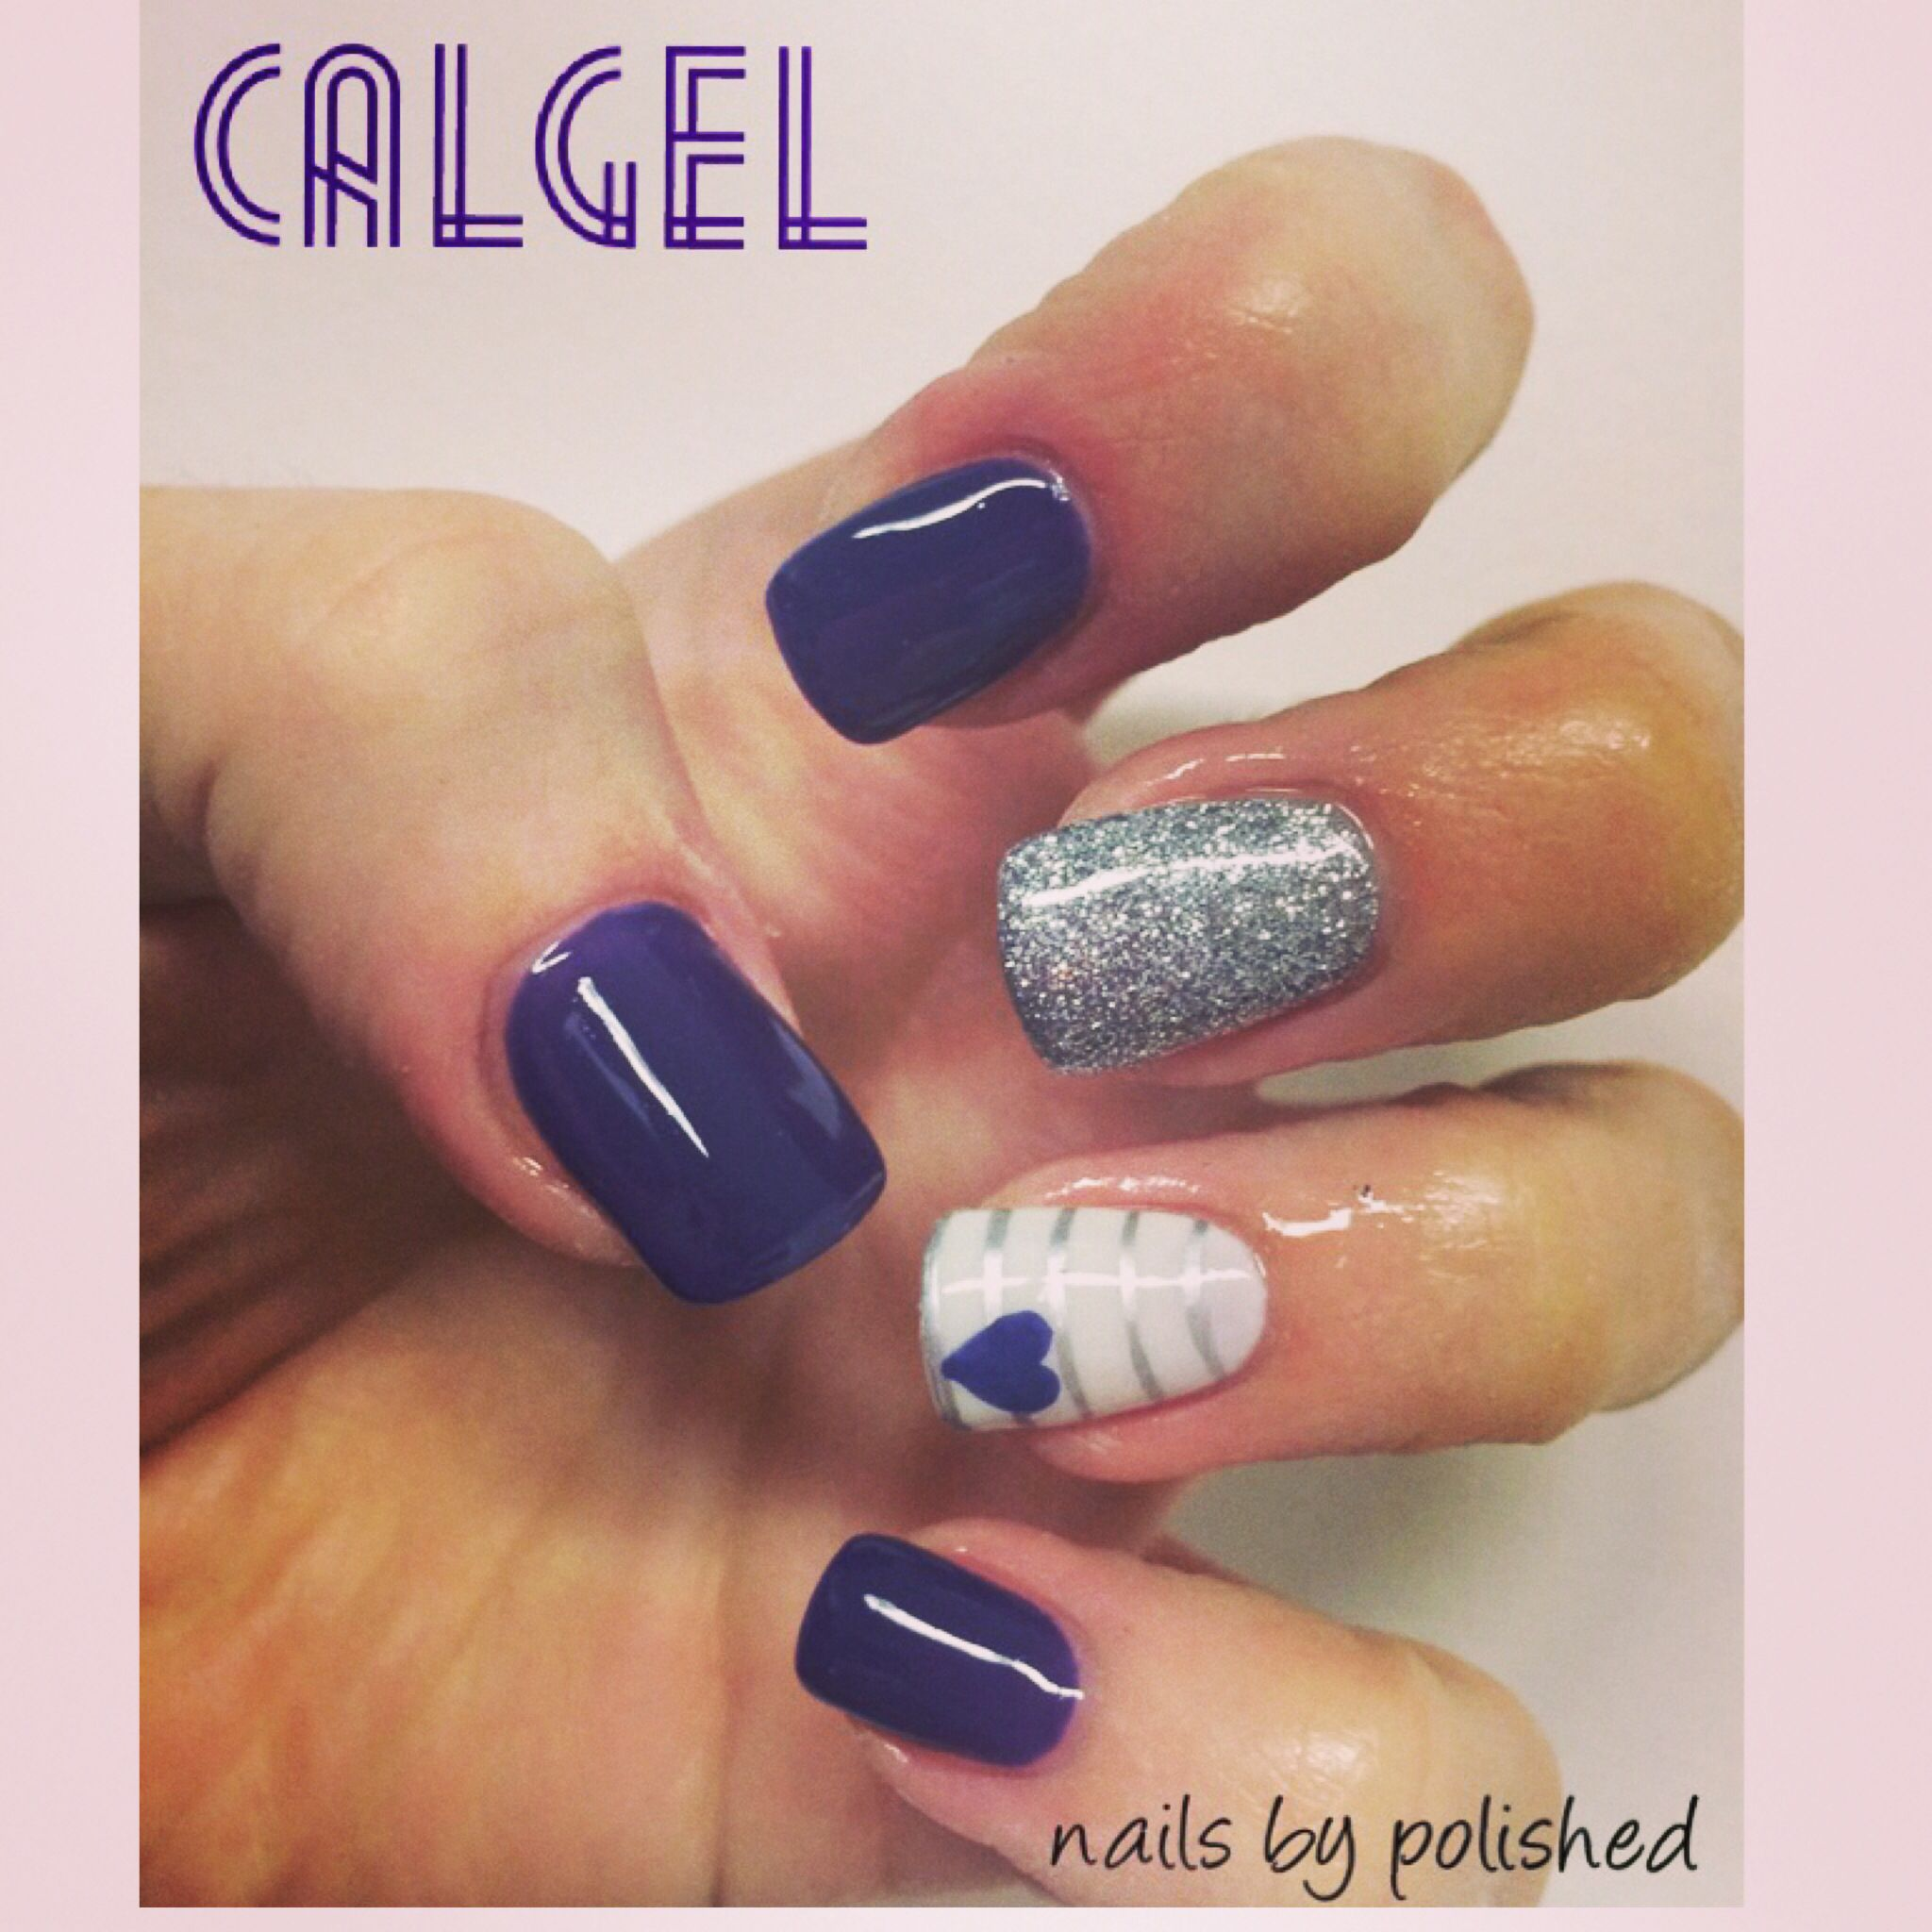 Calgel nails by polished calgel nails by polished pinterest calgel nails by polished prinsesfo Gallery